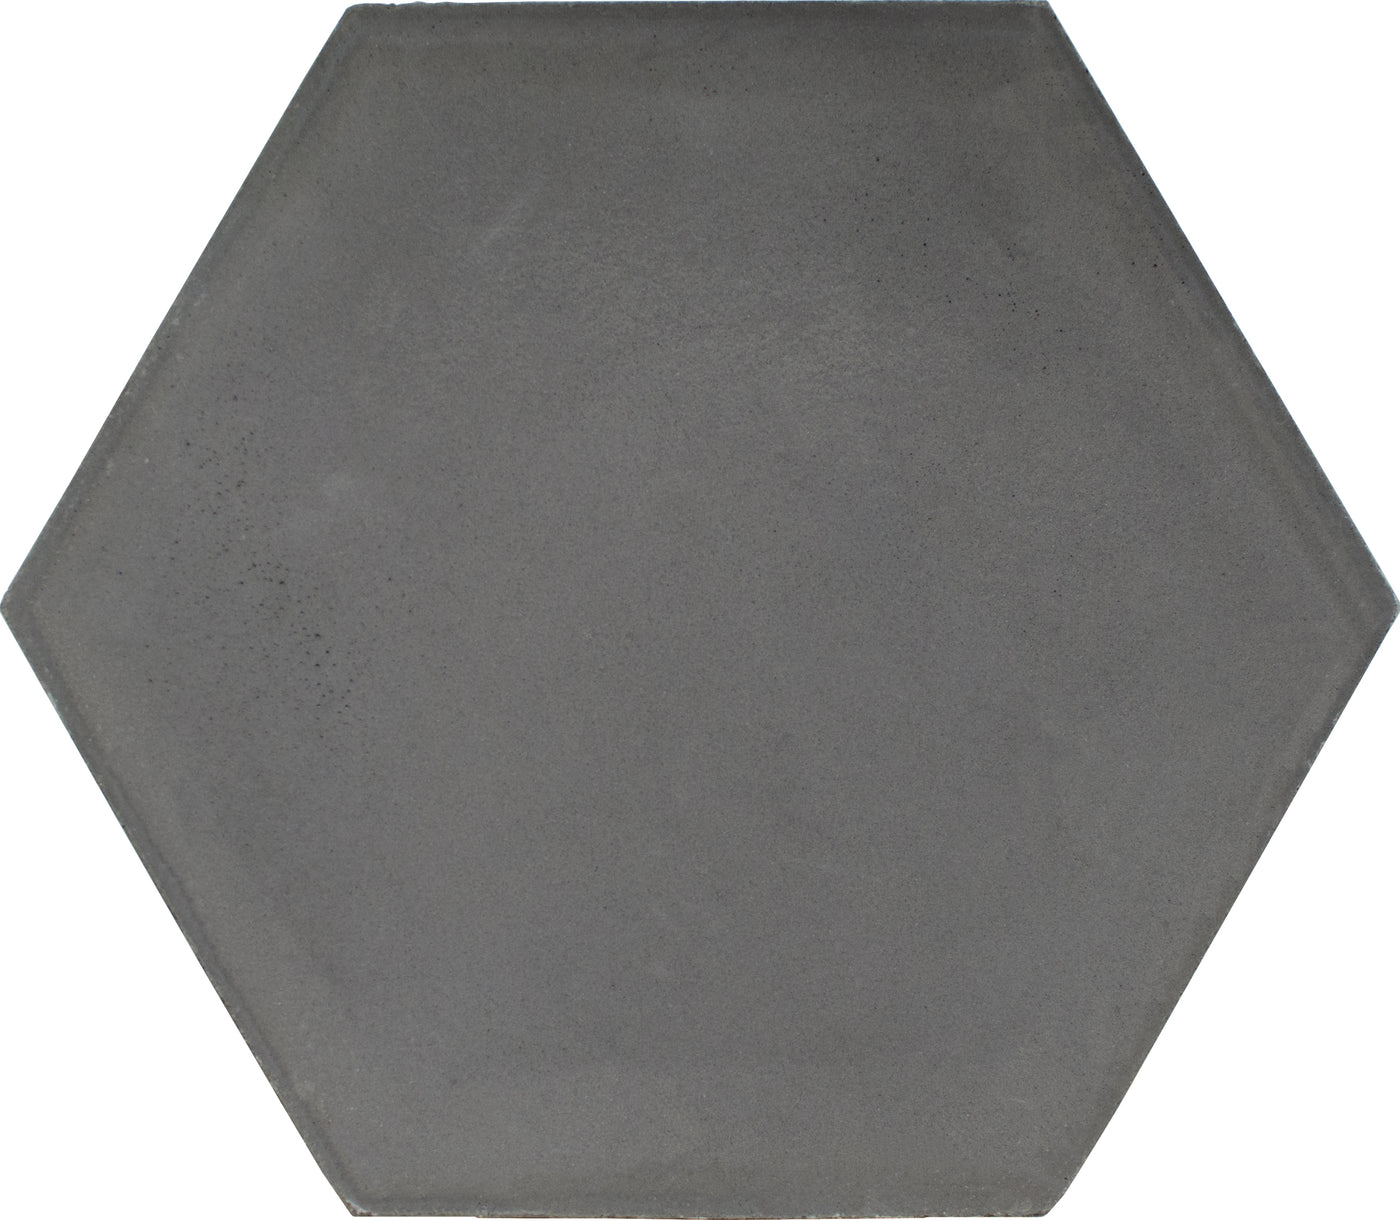 Hexagon cement tile plain Dark grey